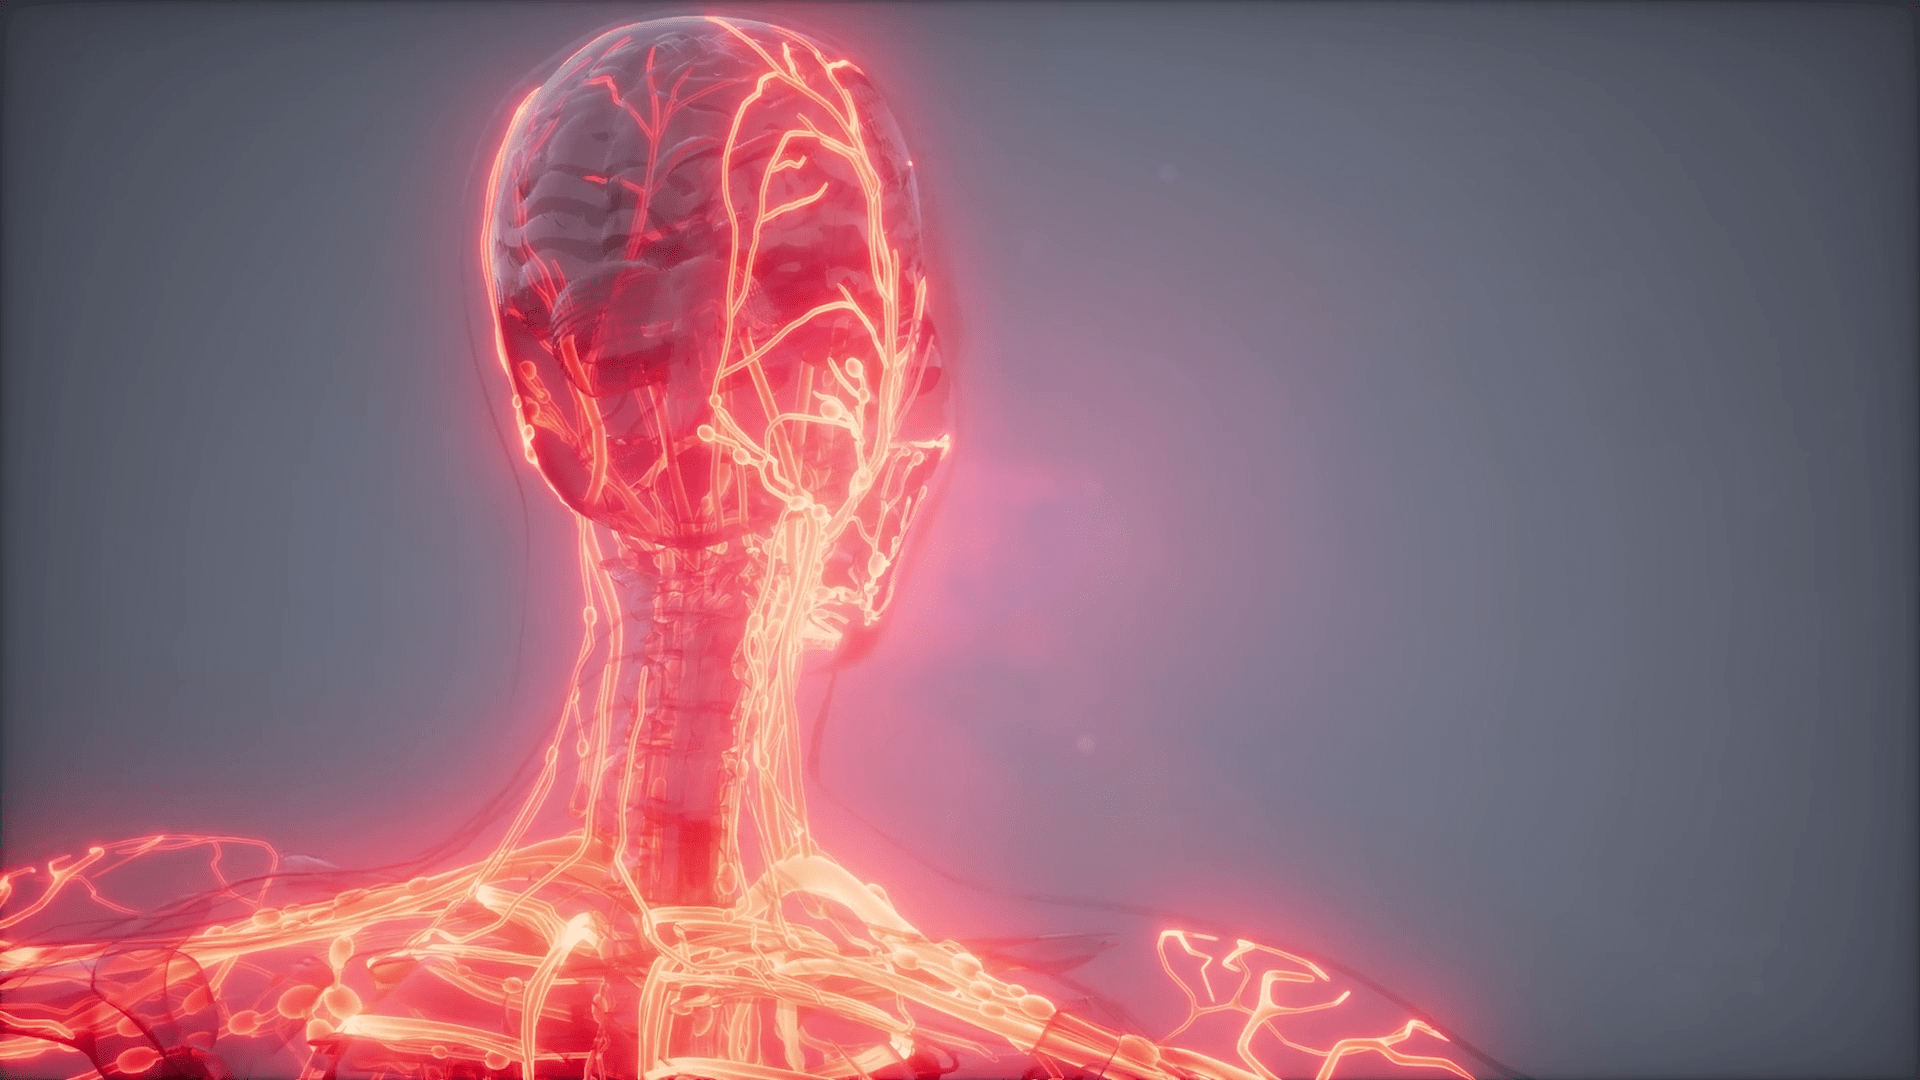 Blood Vessels Of Human Body Motion Background